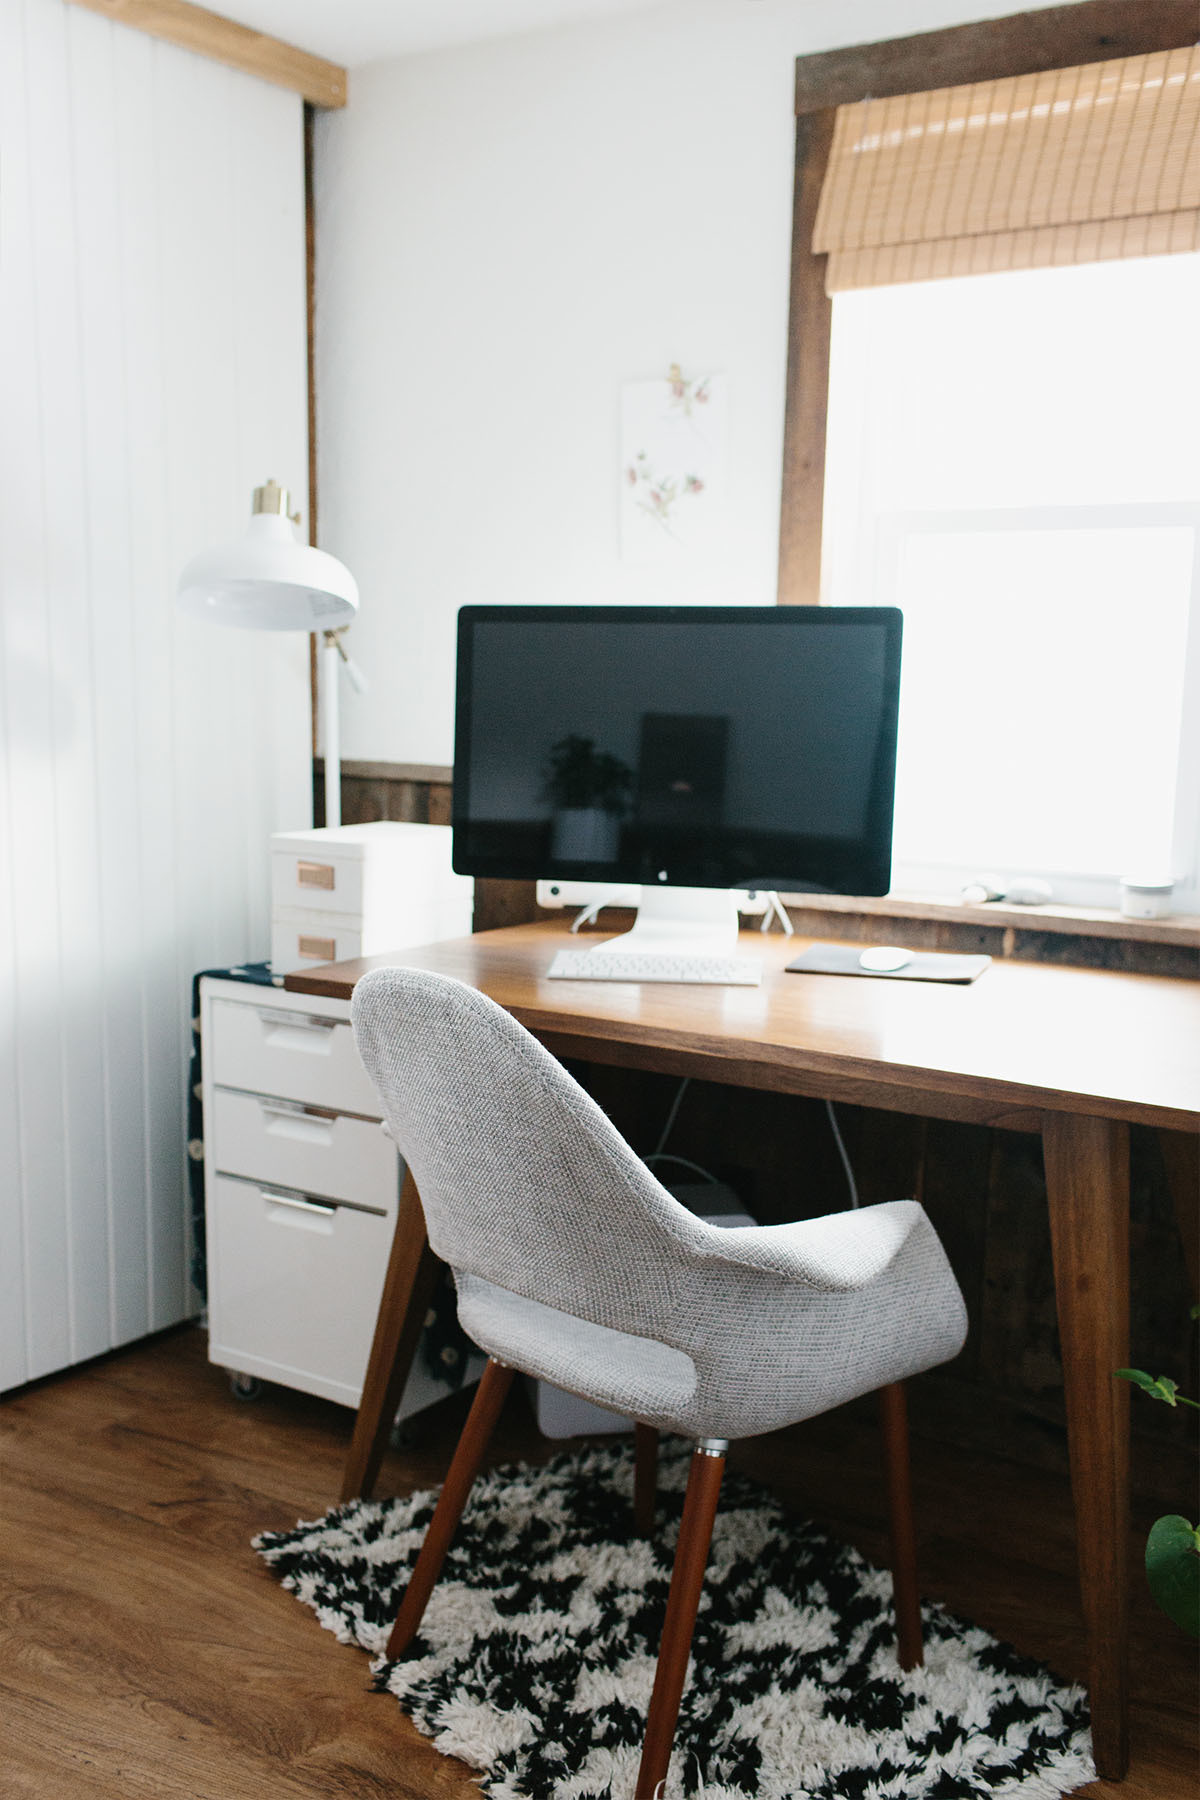 To comfortably work from home, Stier created a cozy study nook within her cottage. West Elm Desk | CB2 Side Table | Darling Botanicals Co. Plant | Spencer Arthur McQueen Artwork | Target Rug | Apple Mac Computer | IKEA Lamp.